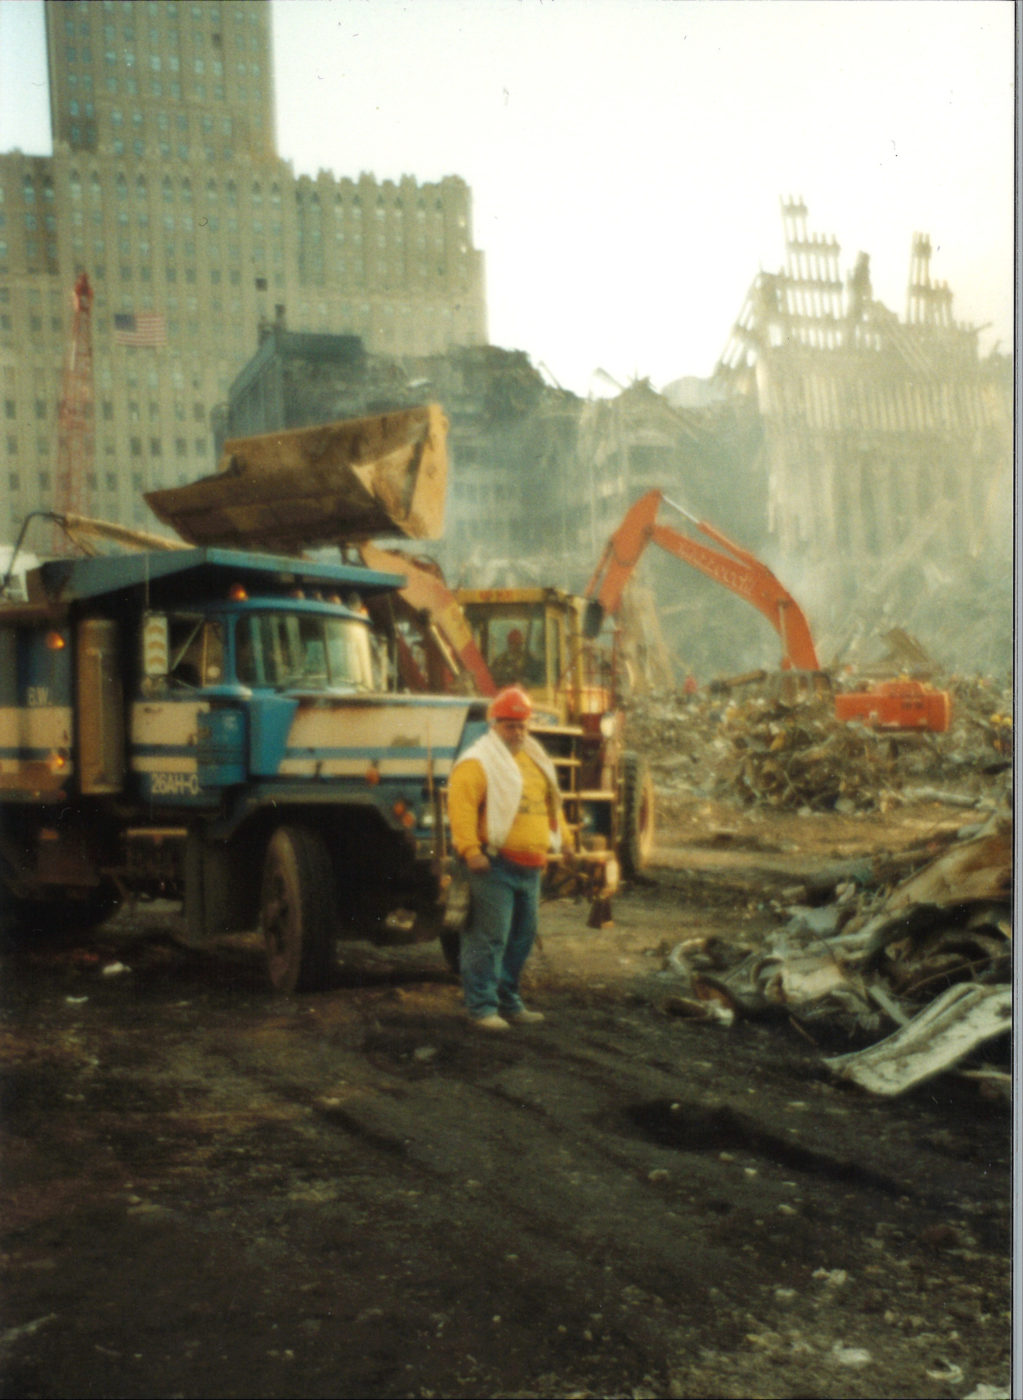 Worker Standing infront of a Truck and Digger at Ground Zero with 140 West St in the Back